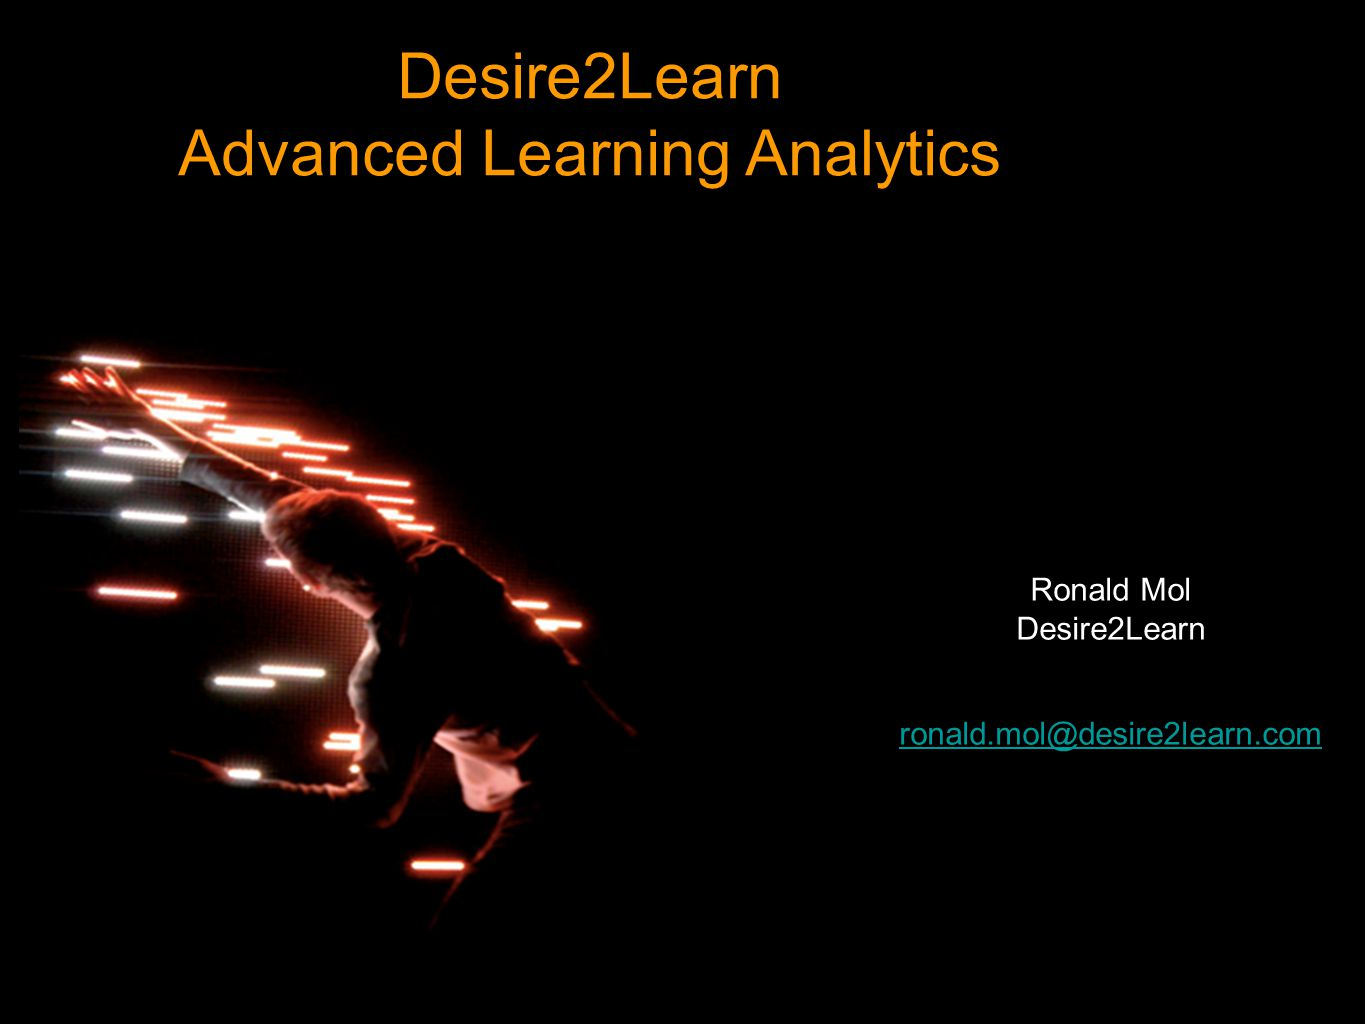 Desire2Learn Advanced Learning Analytics Ronald Mol Desire2Learn ronald.mol@desire2learn.com